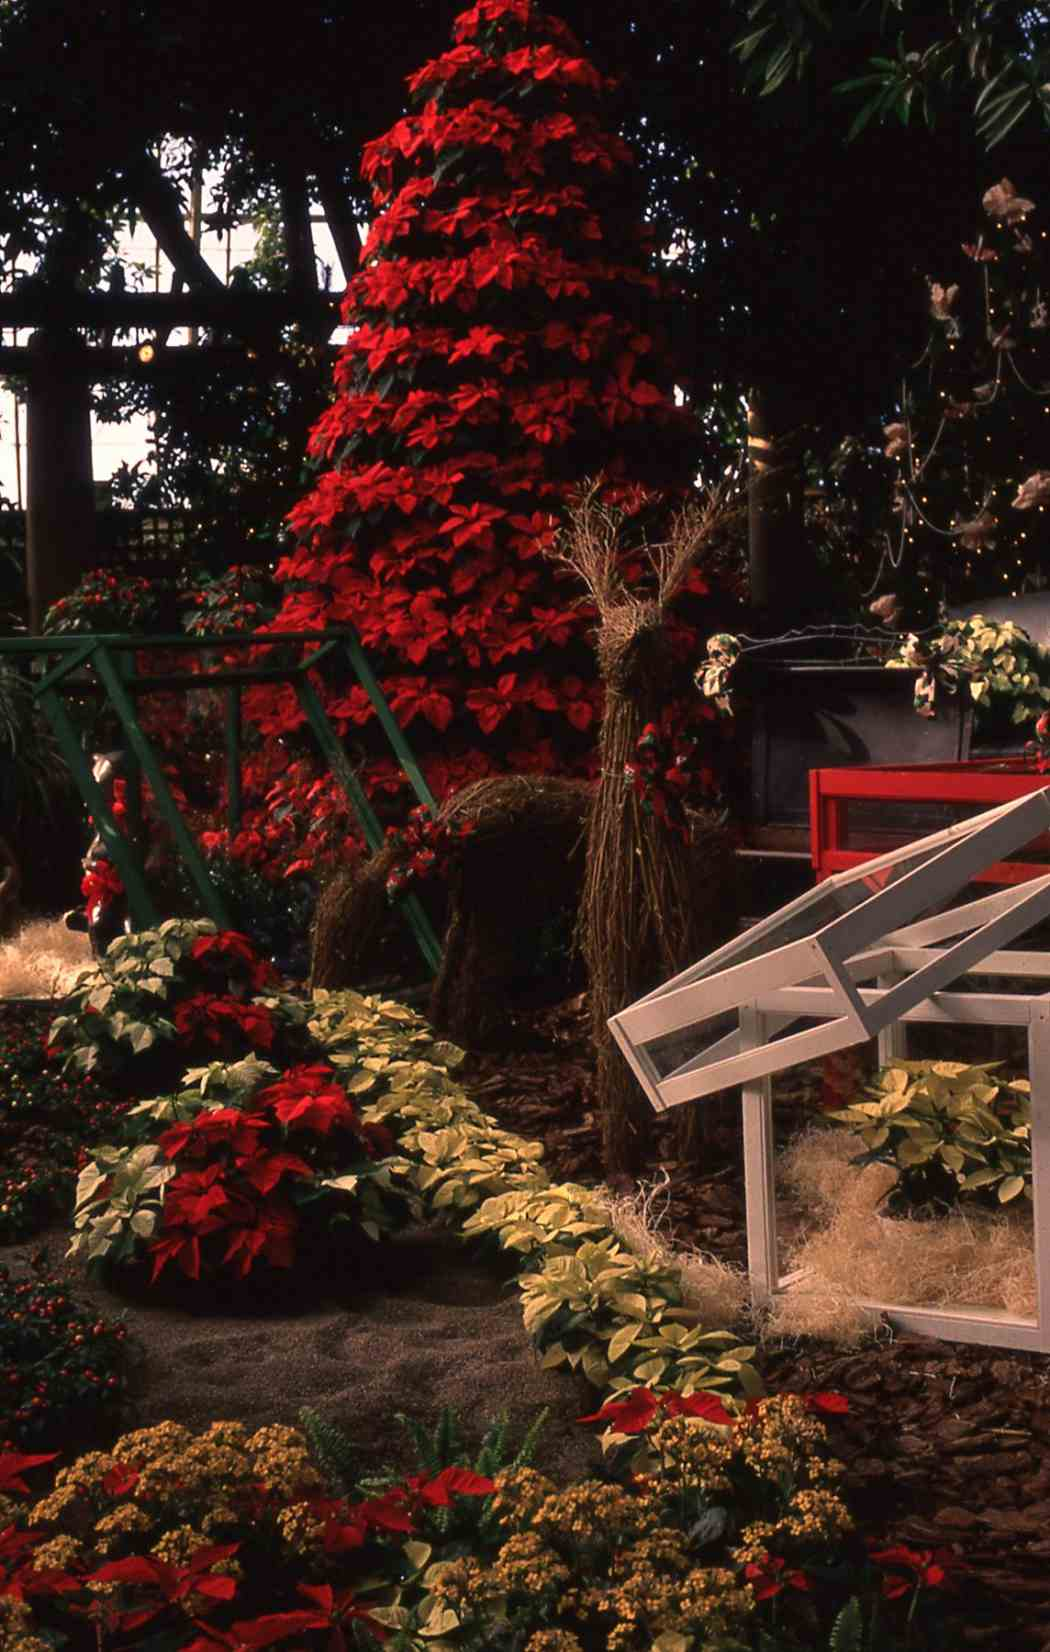 Winter Flower Show 1991: Spirits of Giving